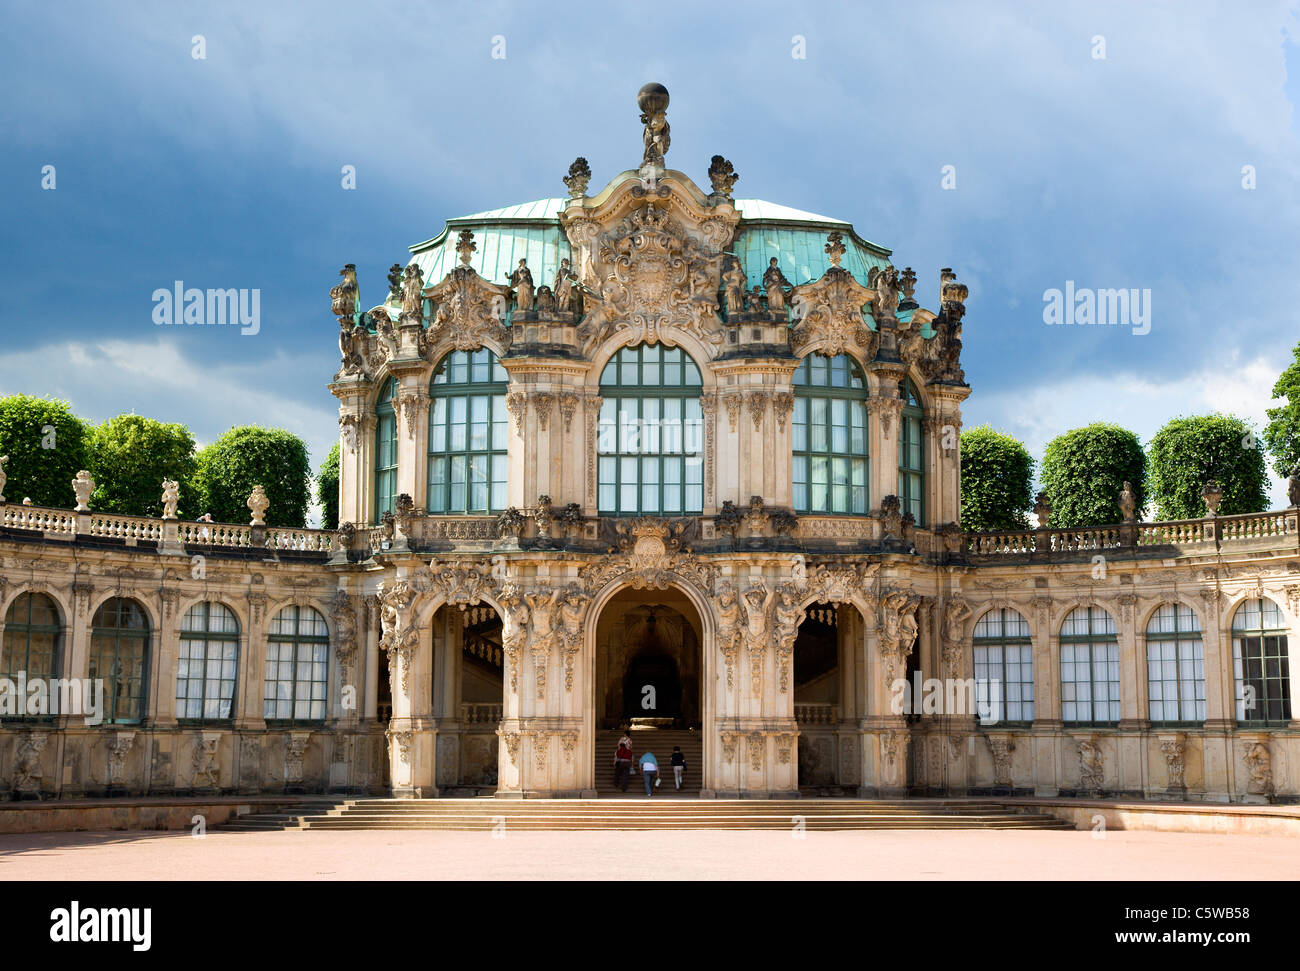 Germany, Saxony, Dresden,     Rampart Pavilion at Zwinger Palace - Stock Image